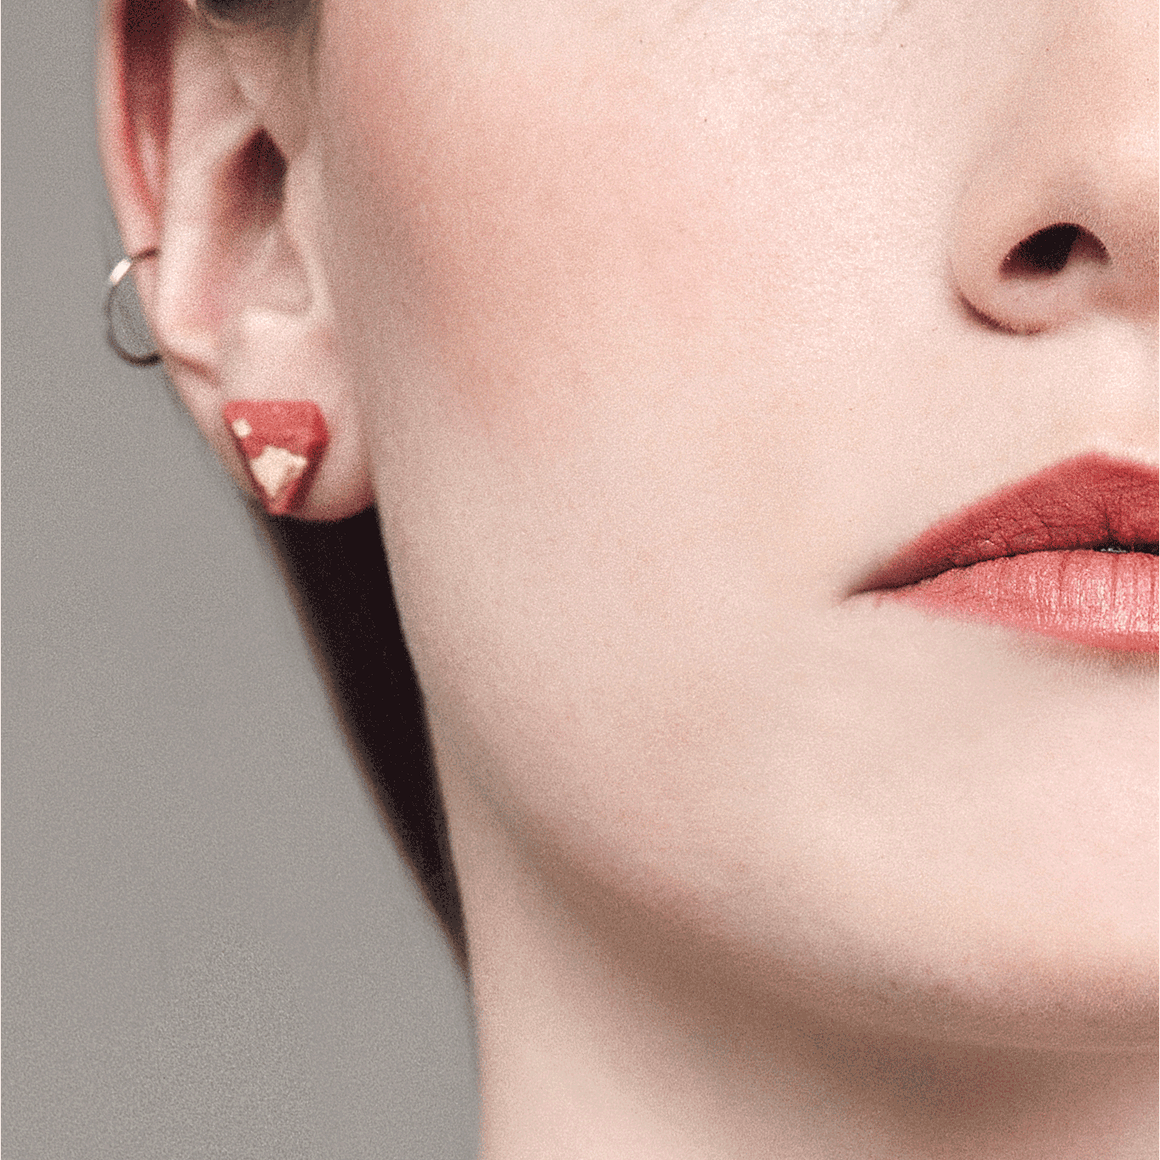 Coral Diamant Stud Earrings - Handmade in Eco-friendly Resin & Gold Leaf - Sold by Chic & Basta